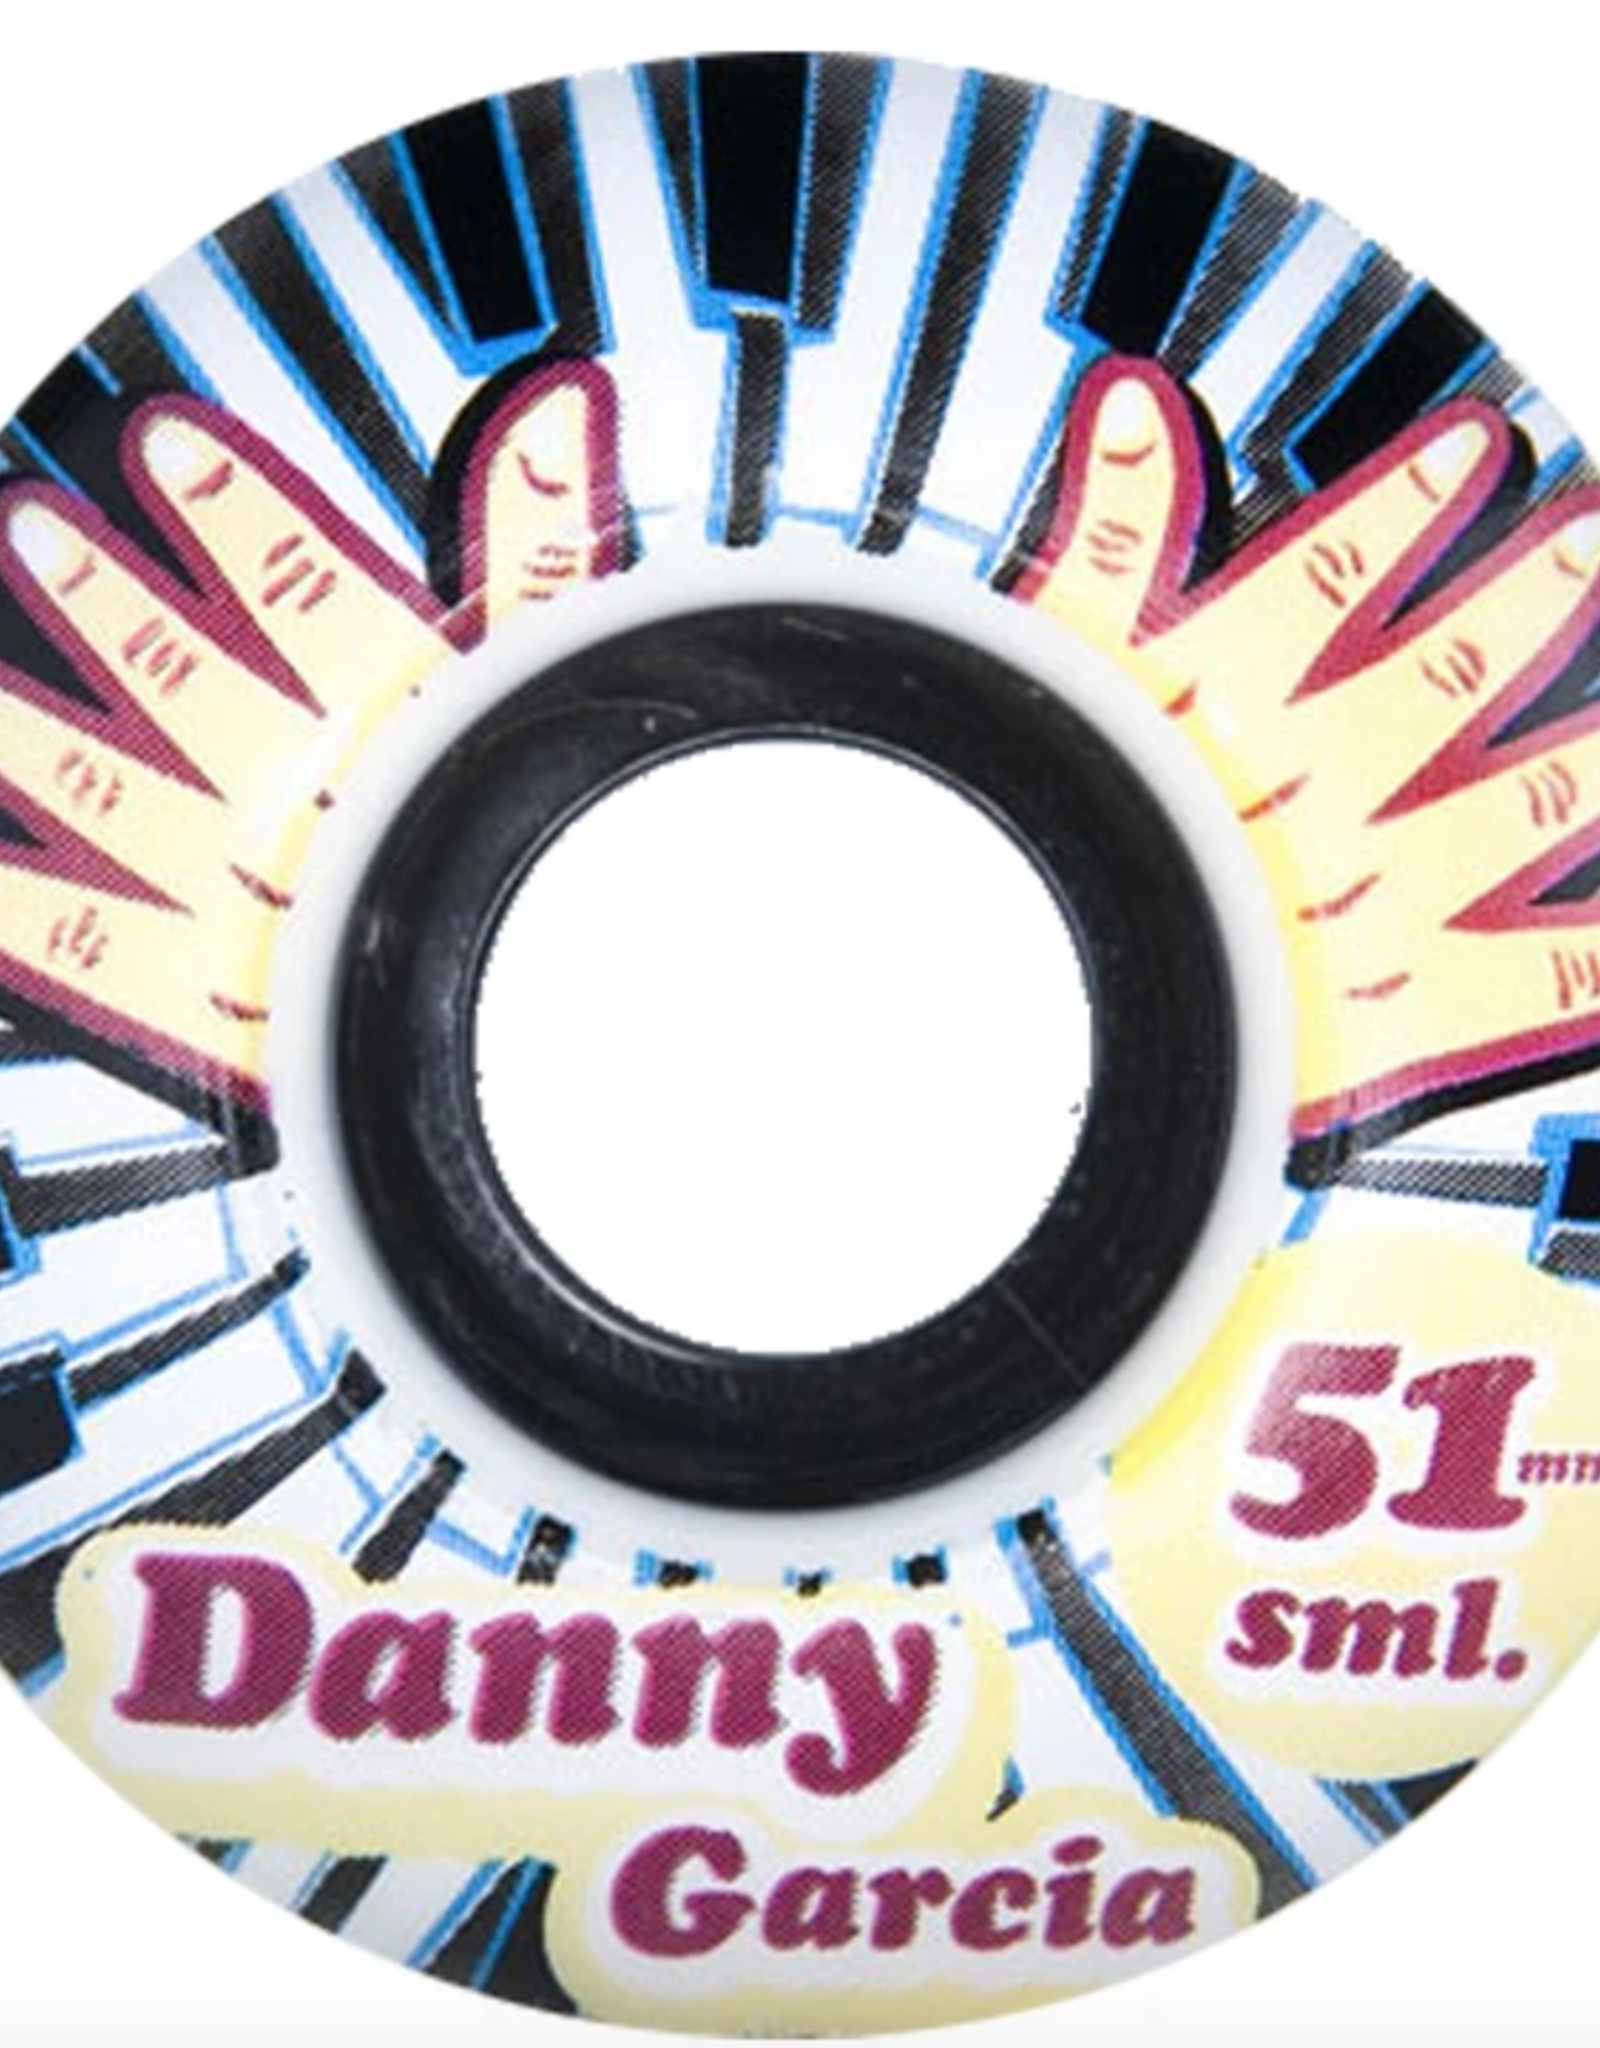 SML SML 51MM DANNY GARCIA PIANO 99A THE LOVE SERIES WHEELS